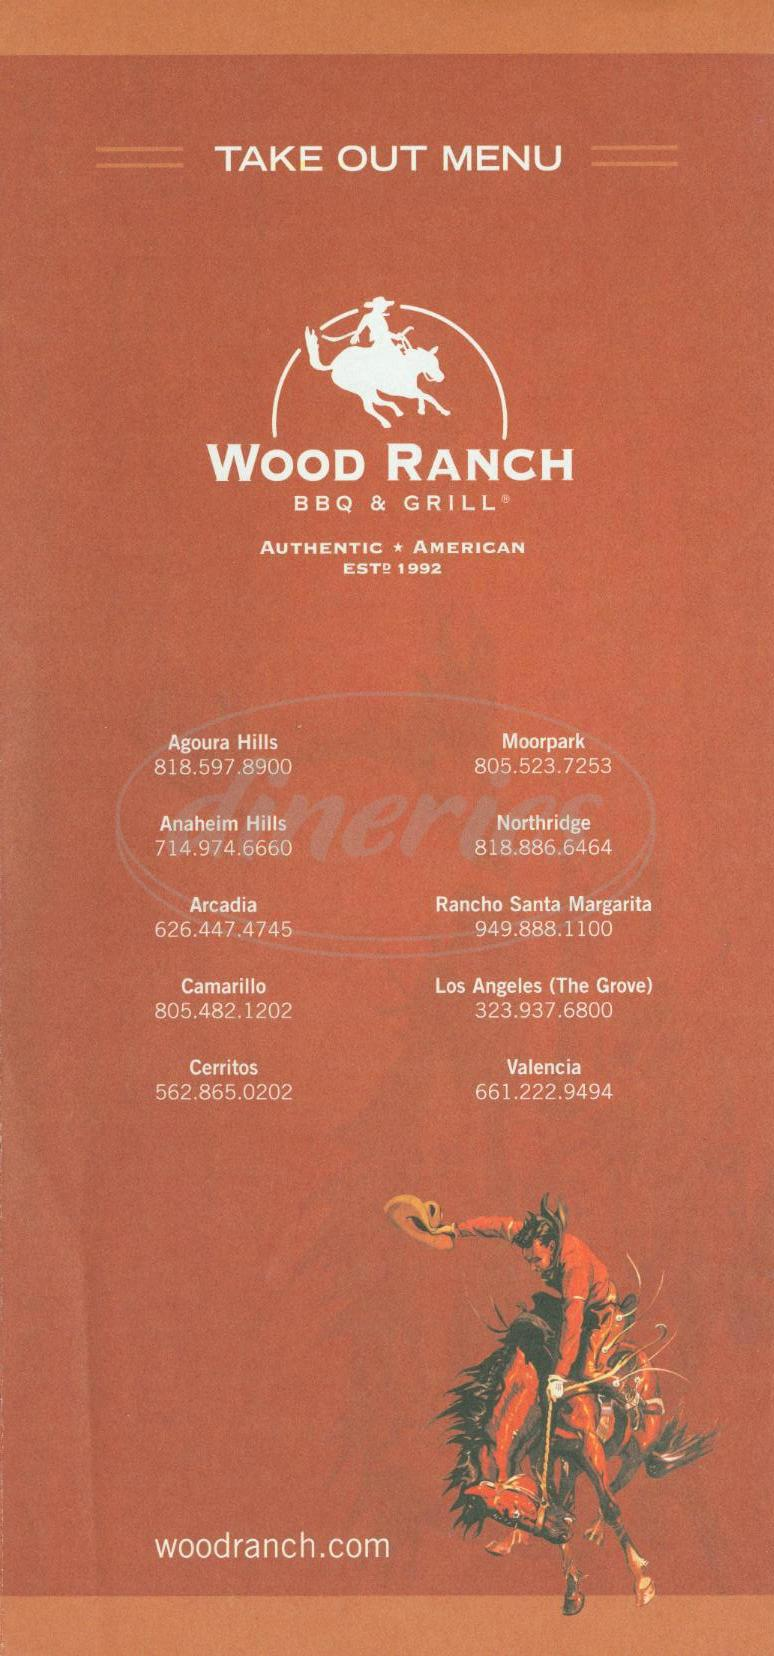 menu for Wood Ranch BBQ & Grill